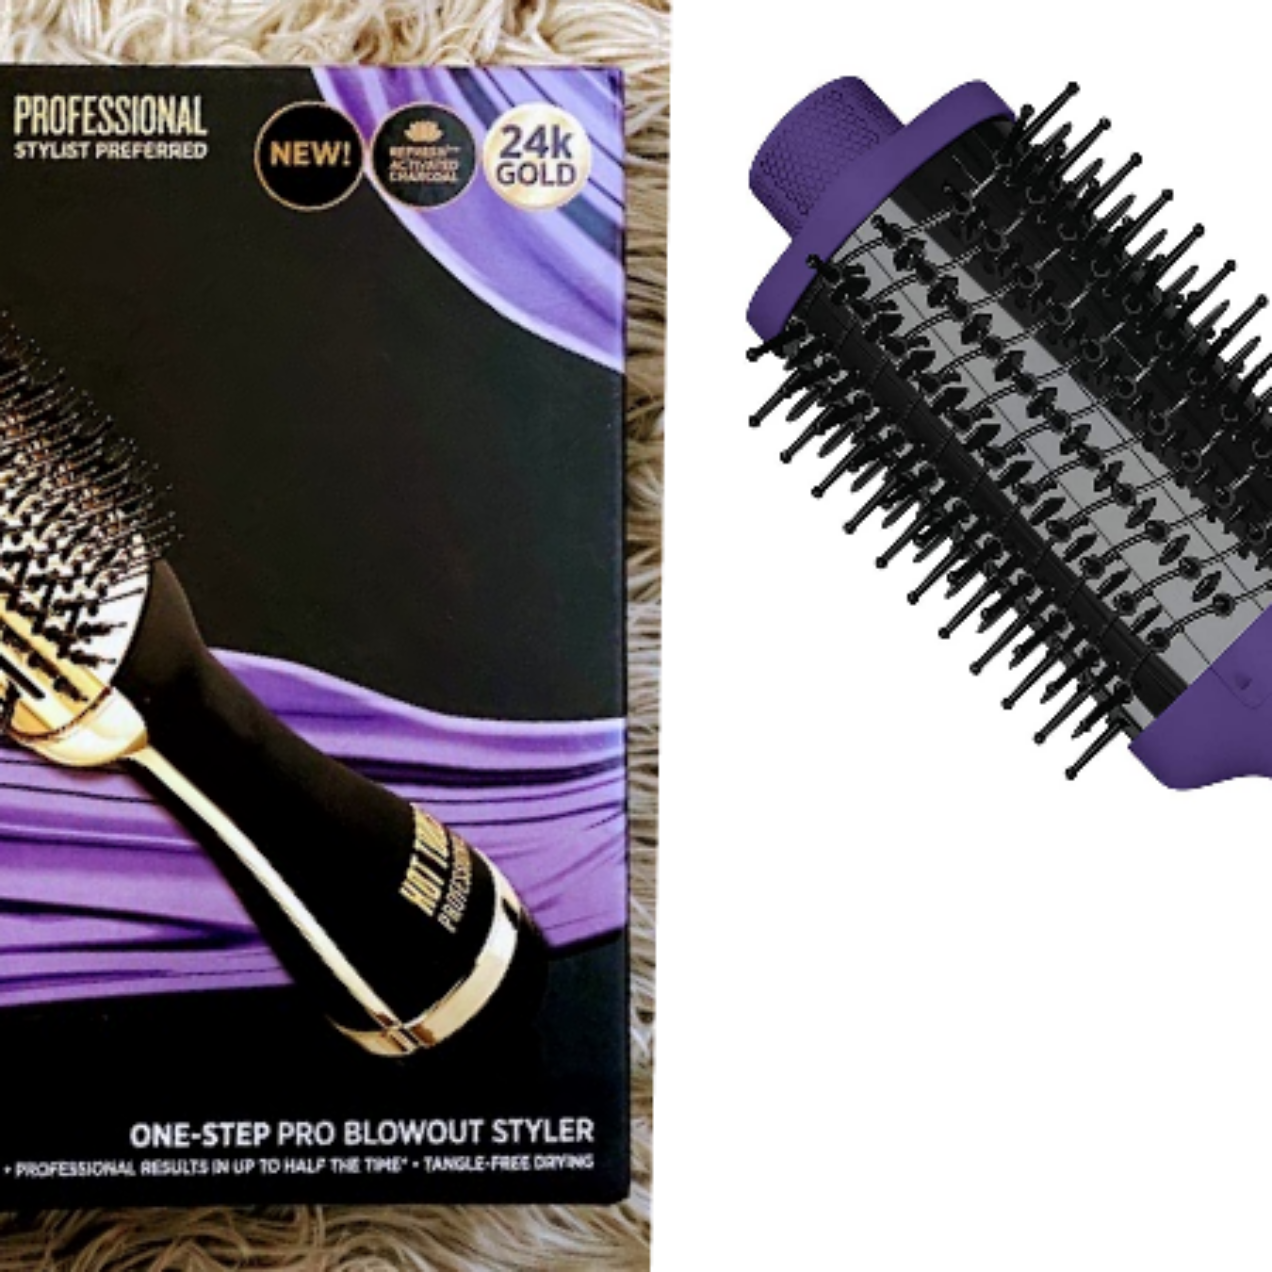 Hot Tools Blowout Brushes, Curling Irons and more- 40% Off Coupons!